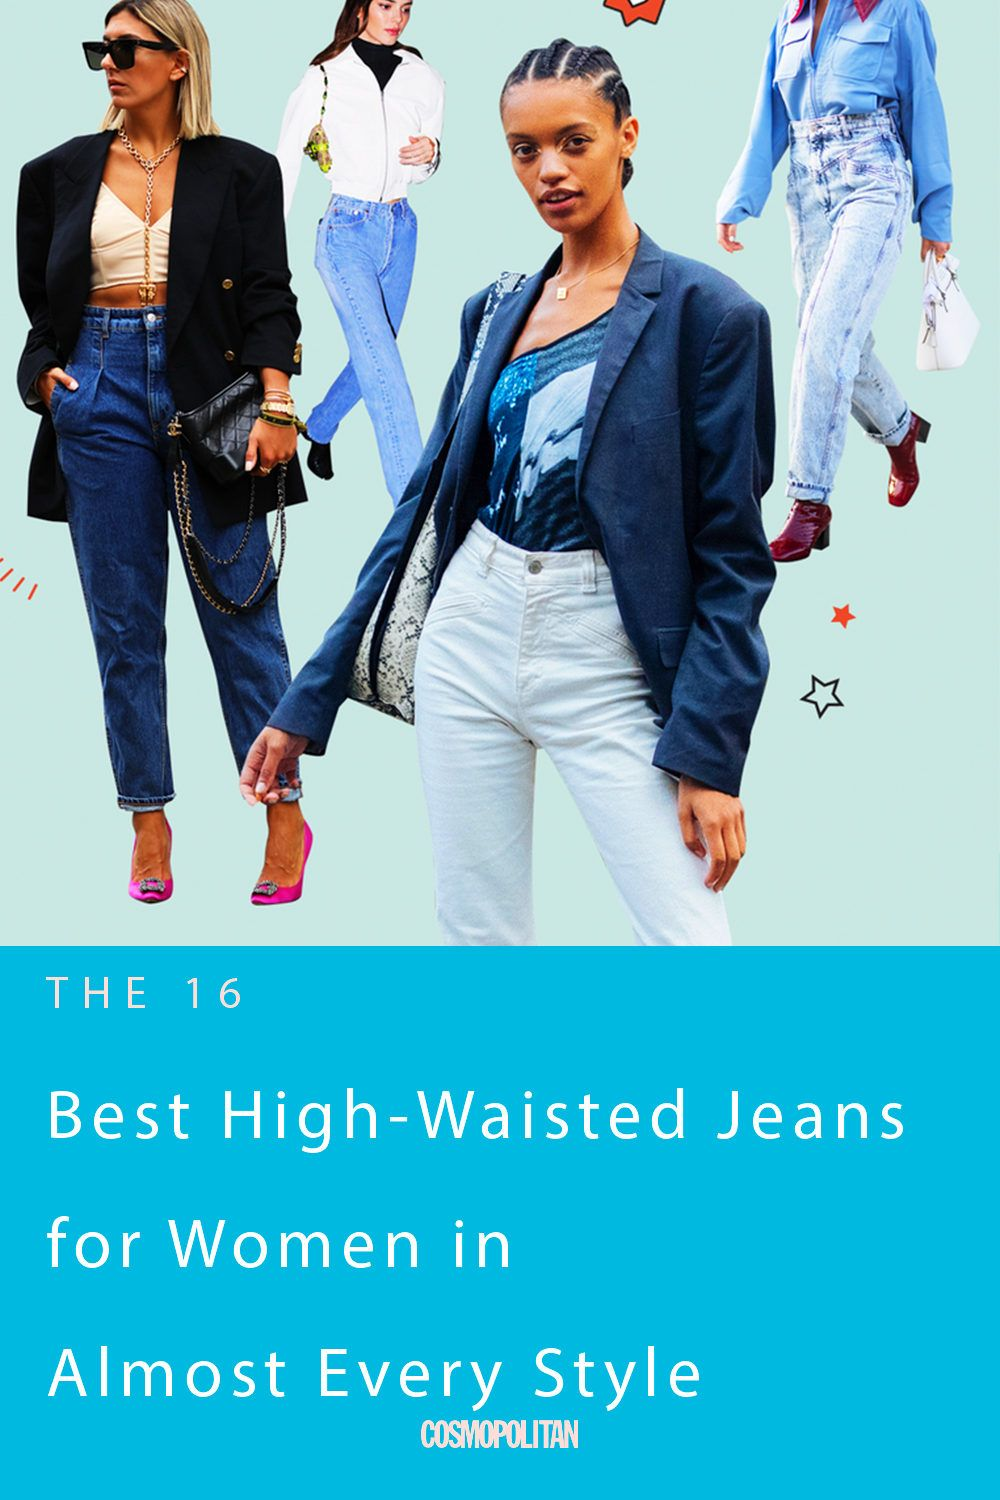 16 of the Best High-Waisted Jeans for Women in Almost Every Style